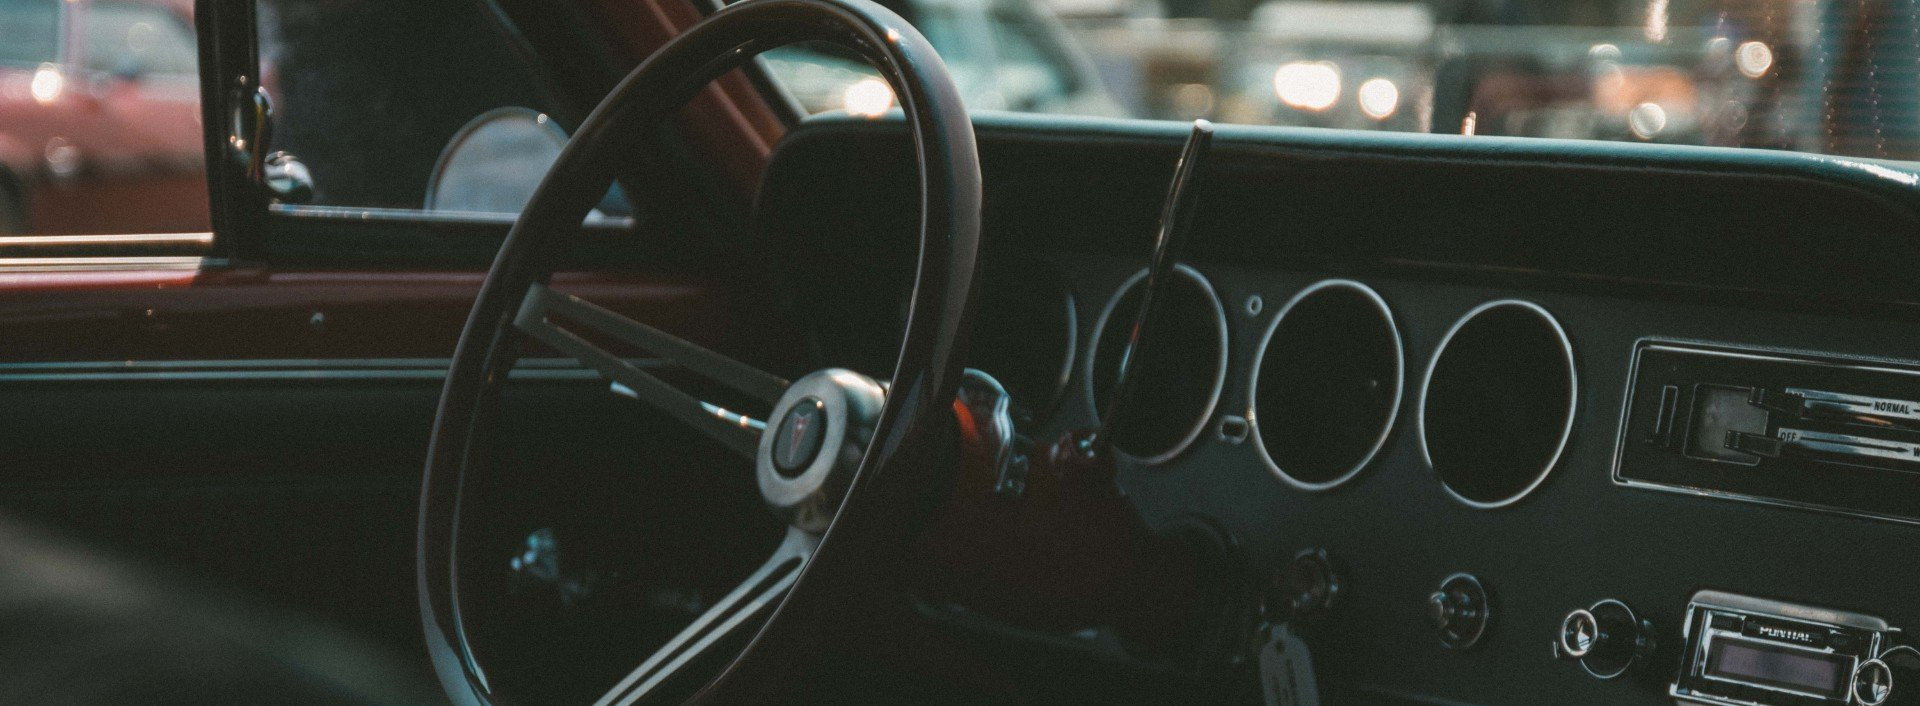 A steering wheel and the dashboard, two important car parts in English, are shown in an old style car.